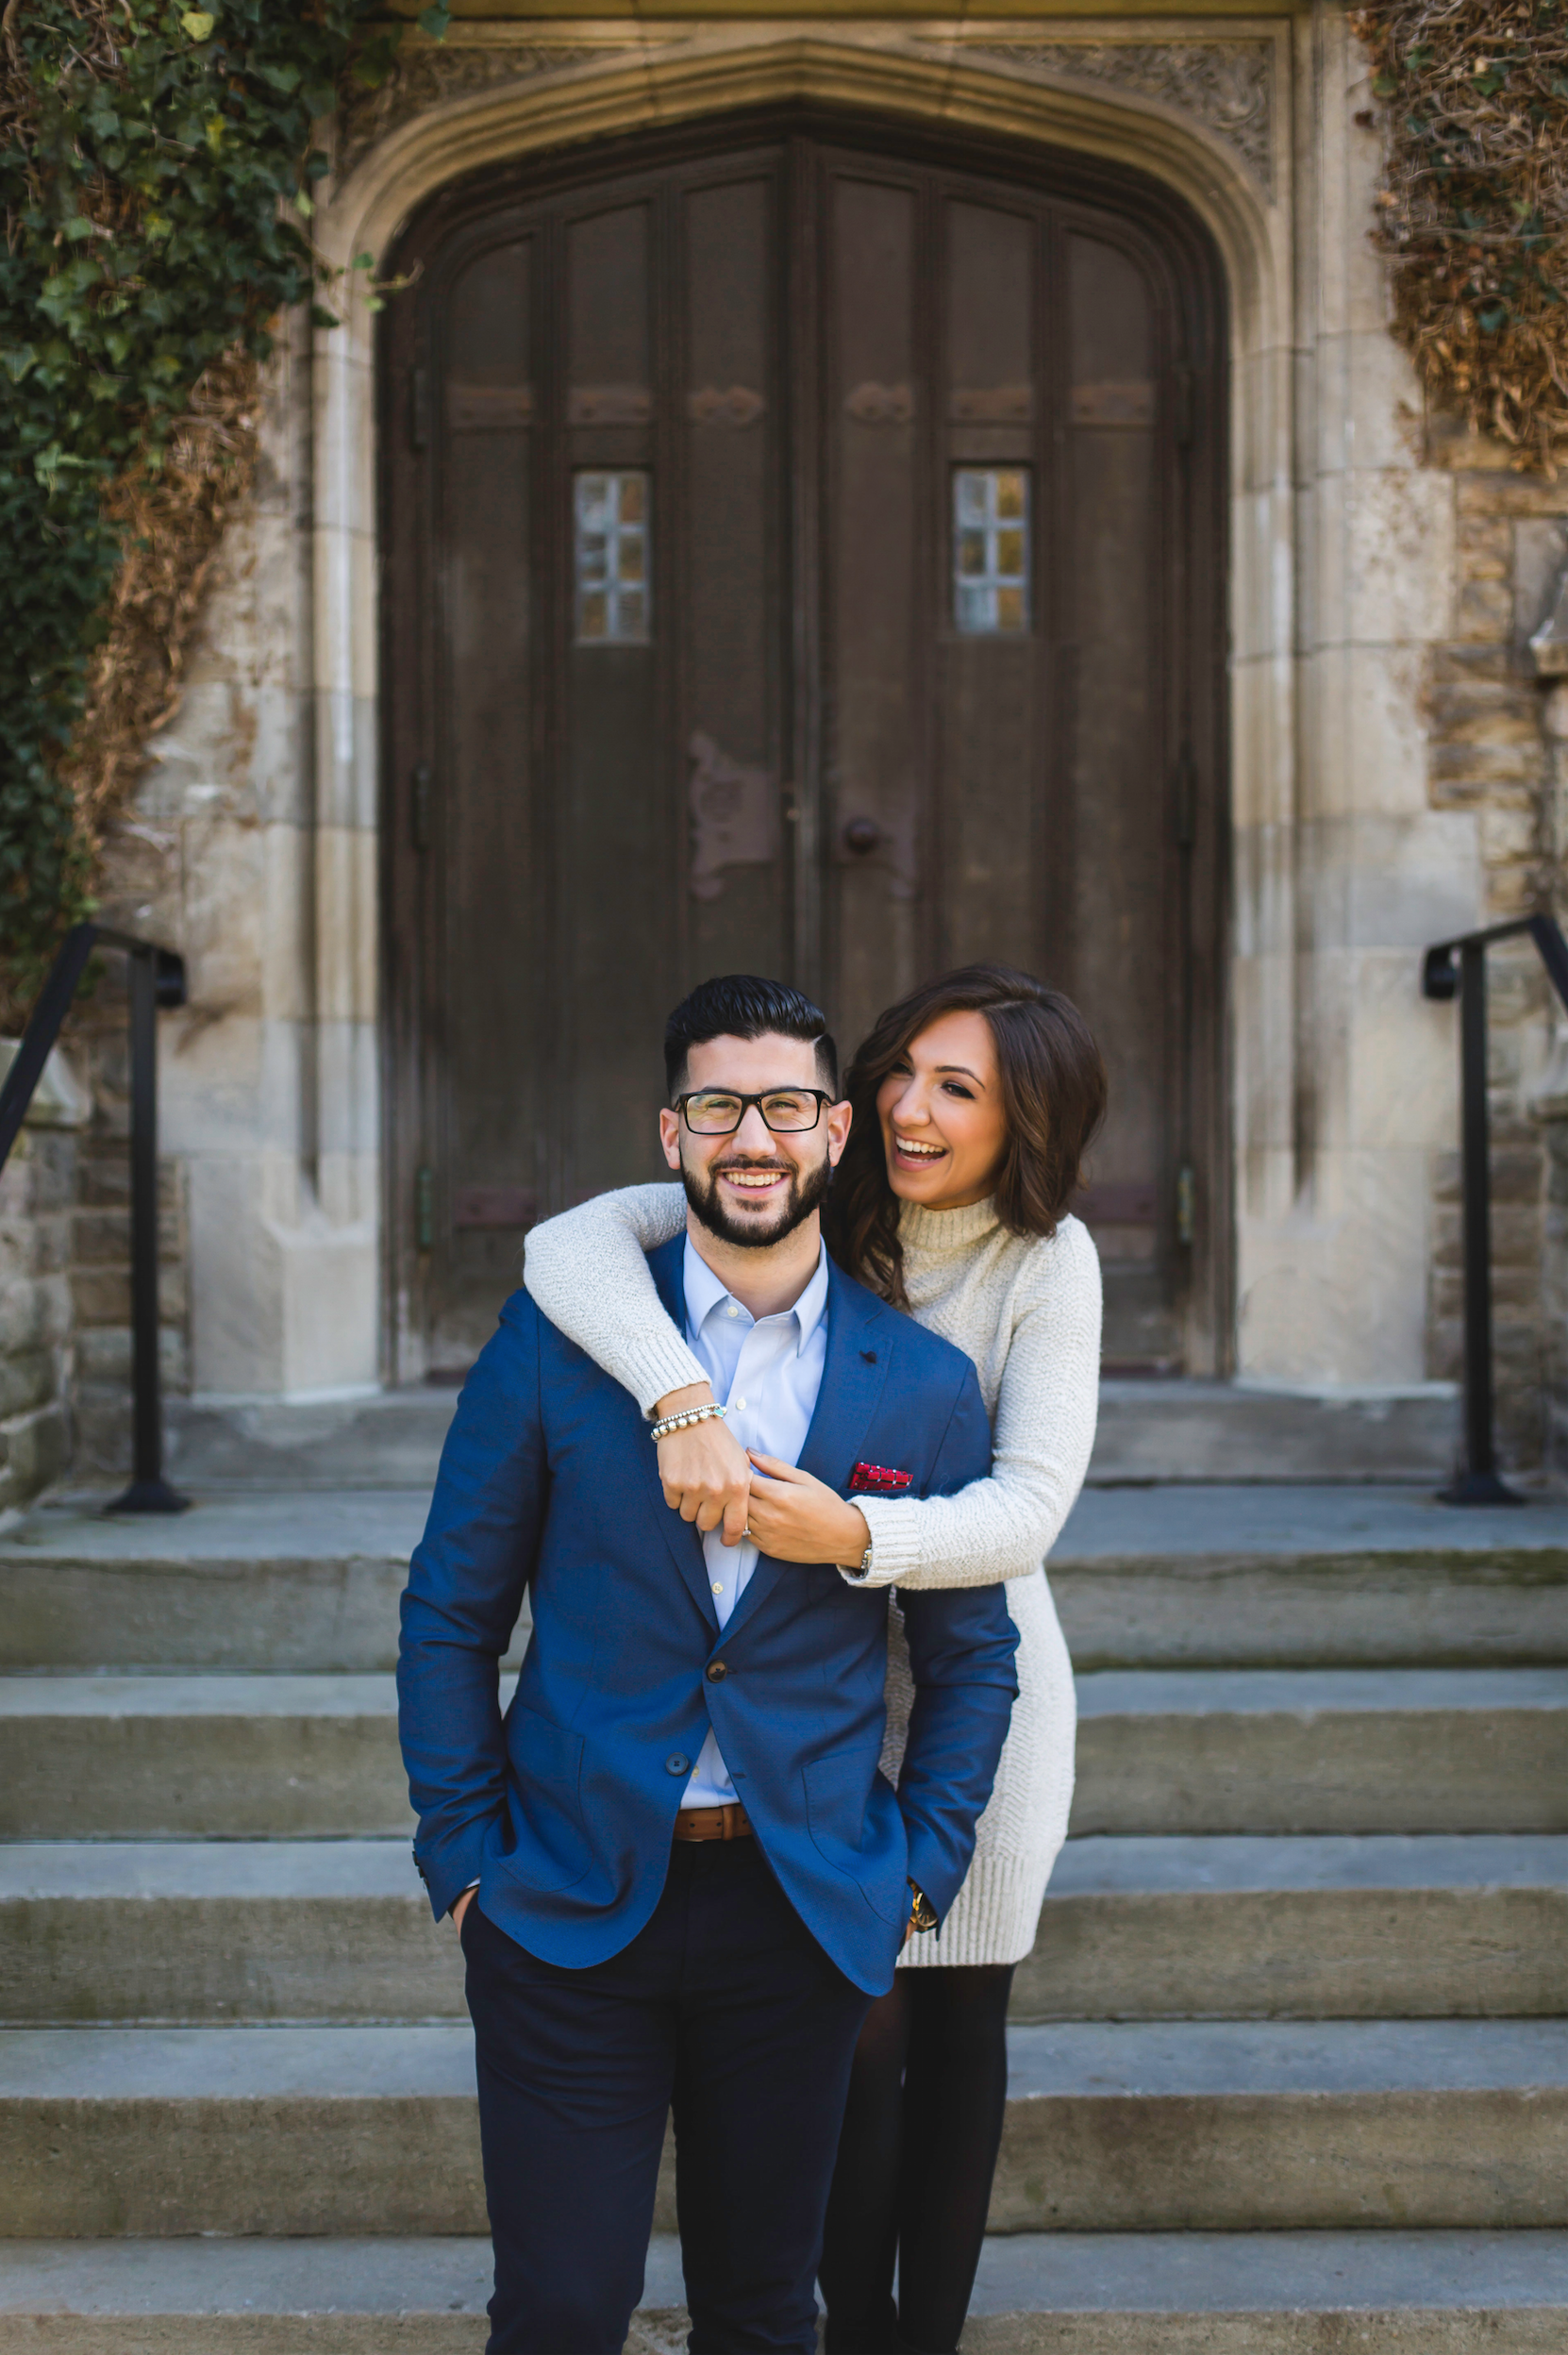 Engagement-Photography-McMaster-University-Campus-Hamilton-Burlington-Oakville-Niagara-Toronto-Wedding-Photographer-Moments-by-Lauren-Photo-Image-1.png